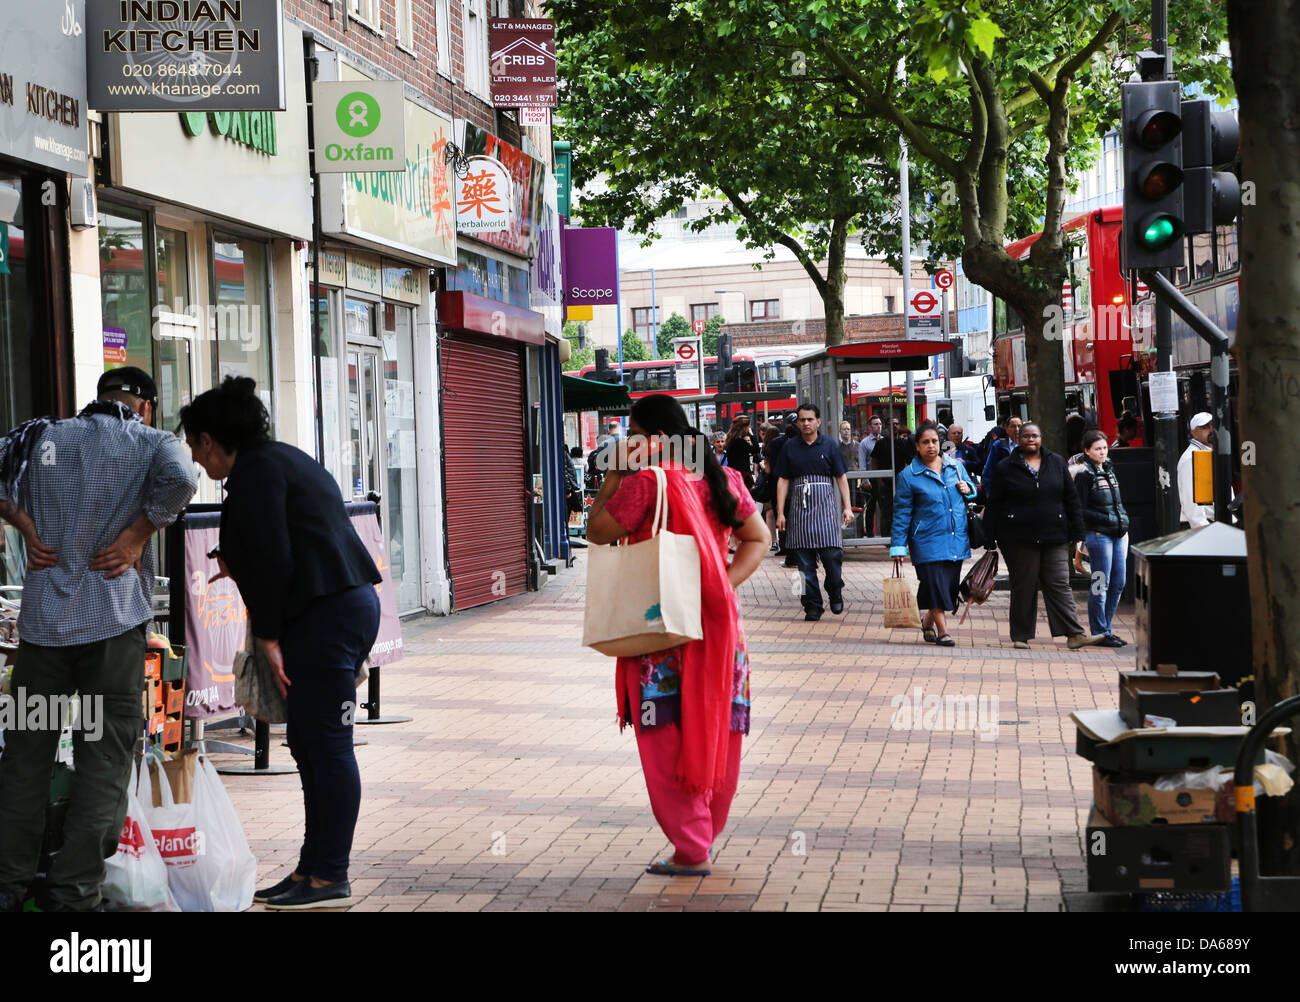 Morden London England People Shopping In High Street Asian Woman on Mobile Phone - Stock Image